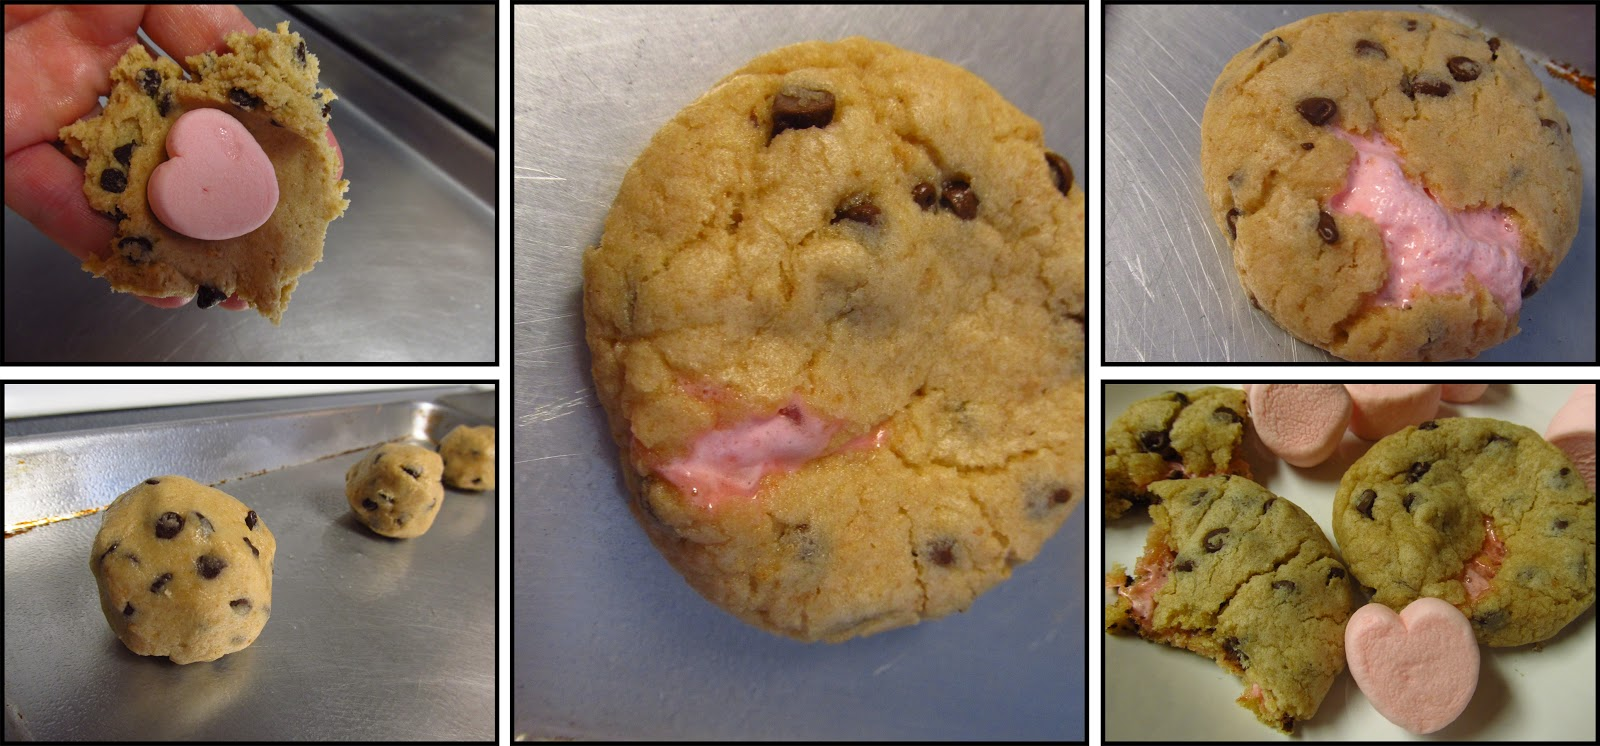 MOMS CRAZY COOKING: Chocolate Chip Cookies with Heart Marshmallow ...